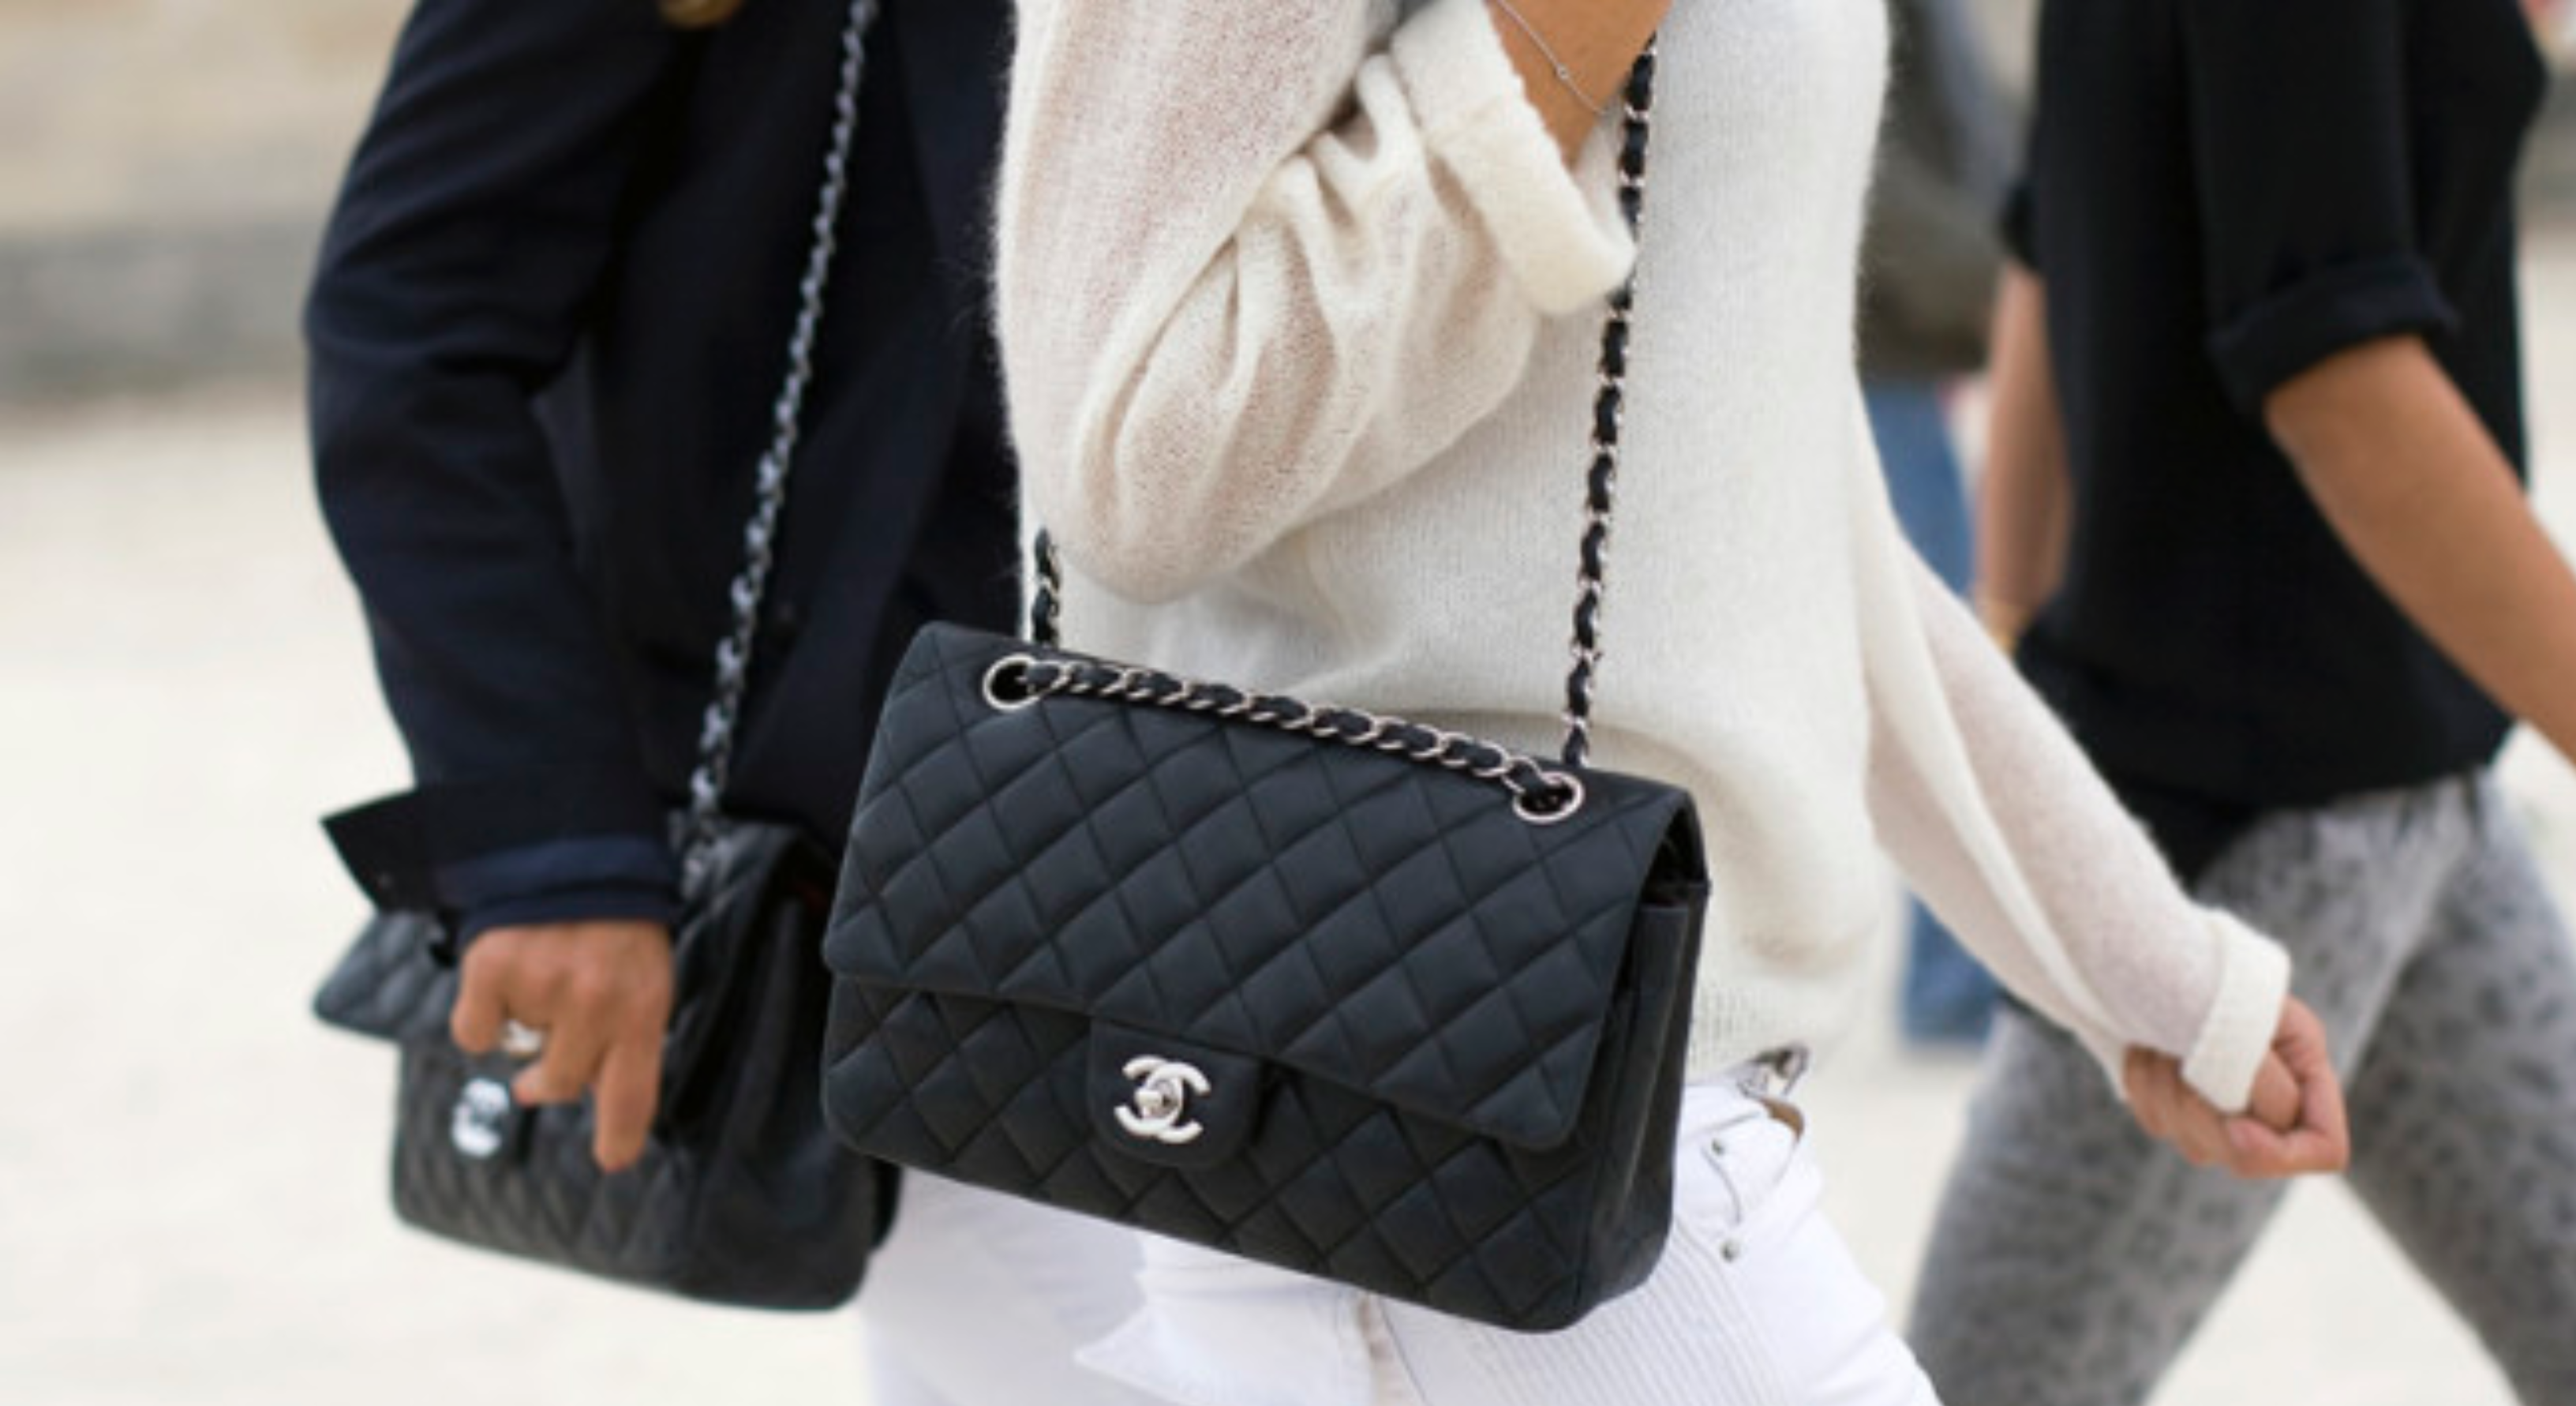 Chanel - the 2.55, the Reissue and the Flap